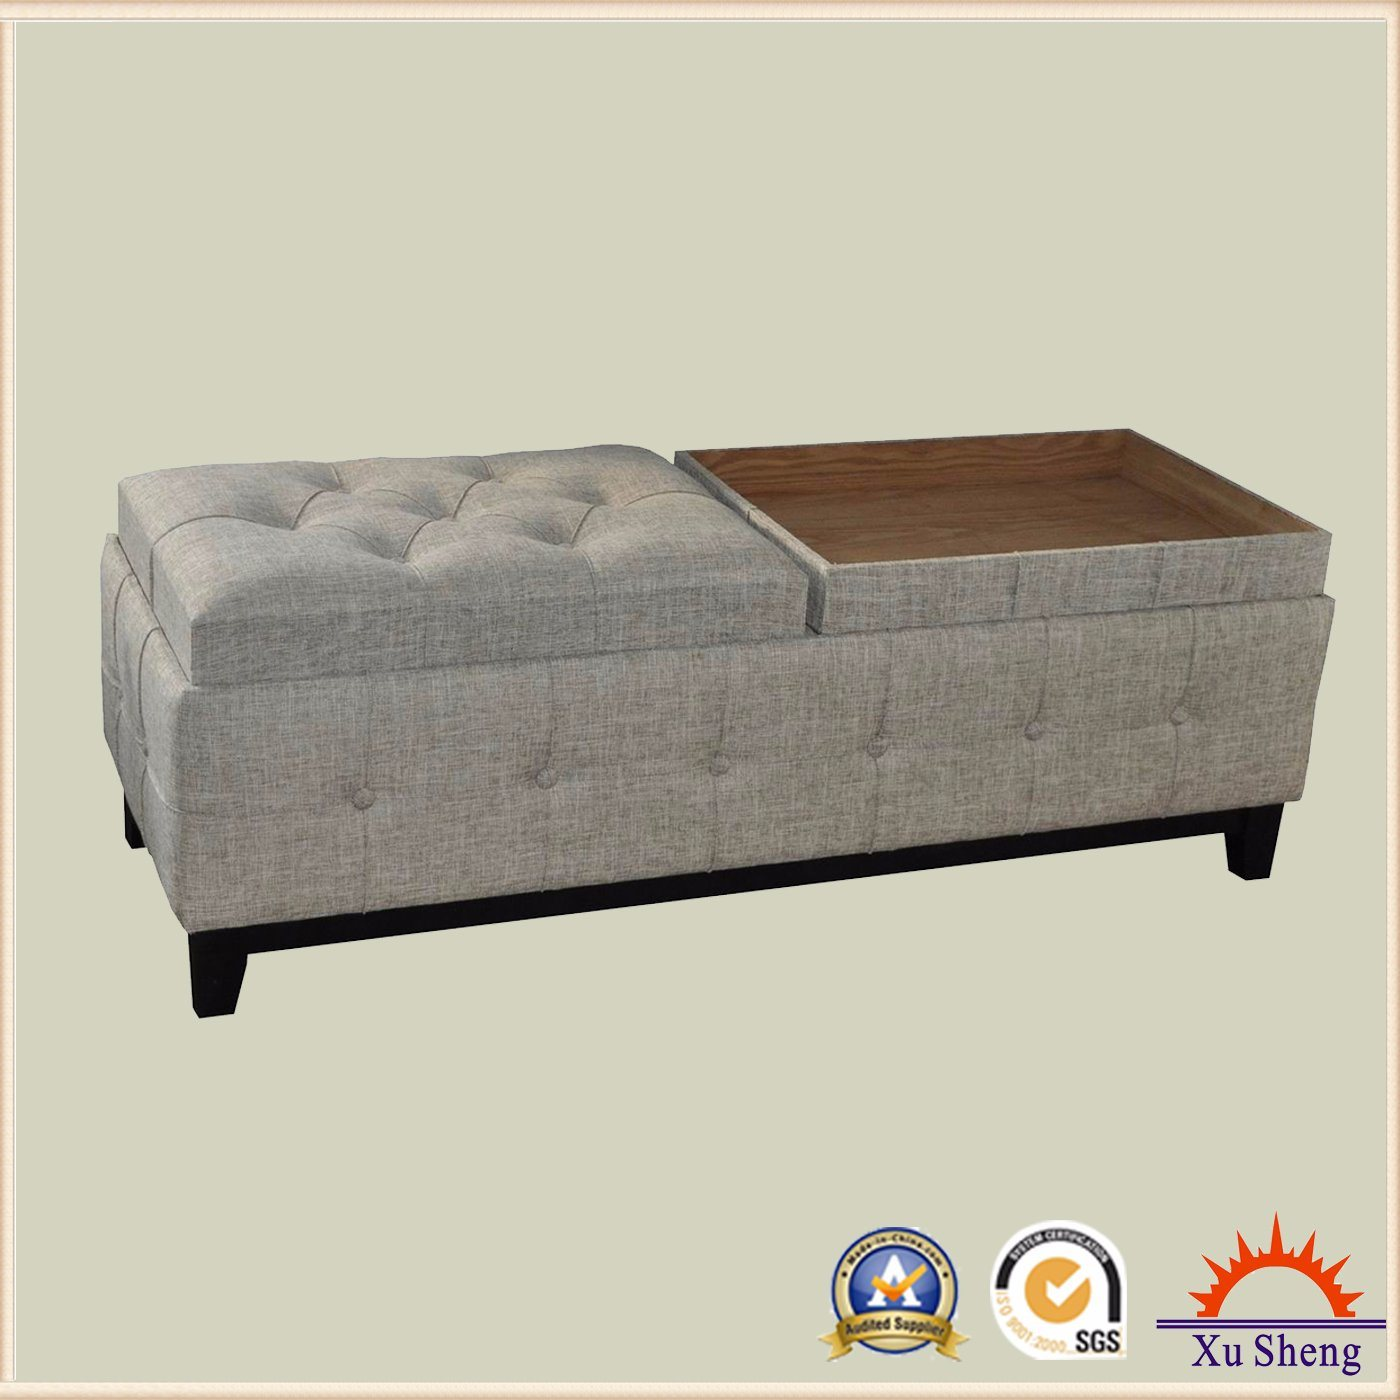 Bedroom Furniture Fabric Rectangle Tufted Storage Bed Bench Ottoman with Tray Top